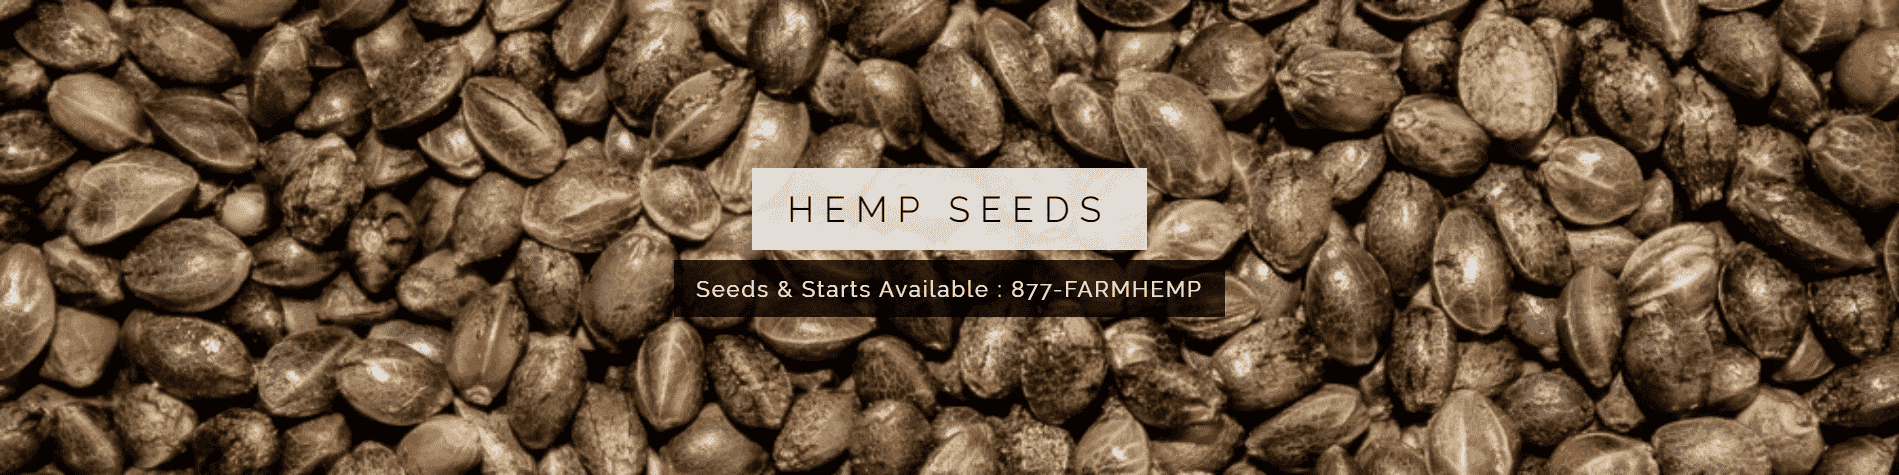 banner with feminized hemp seeds